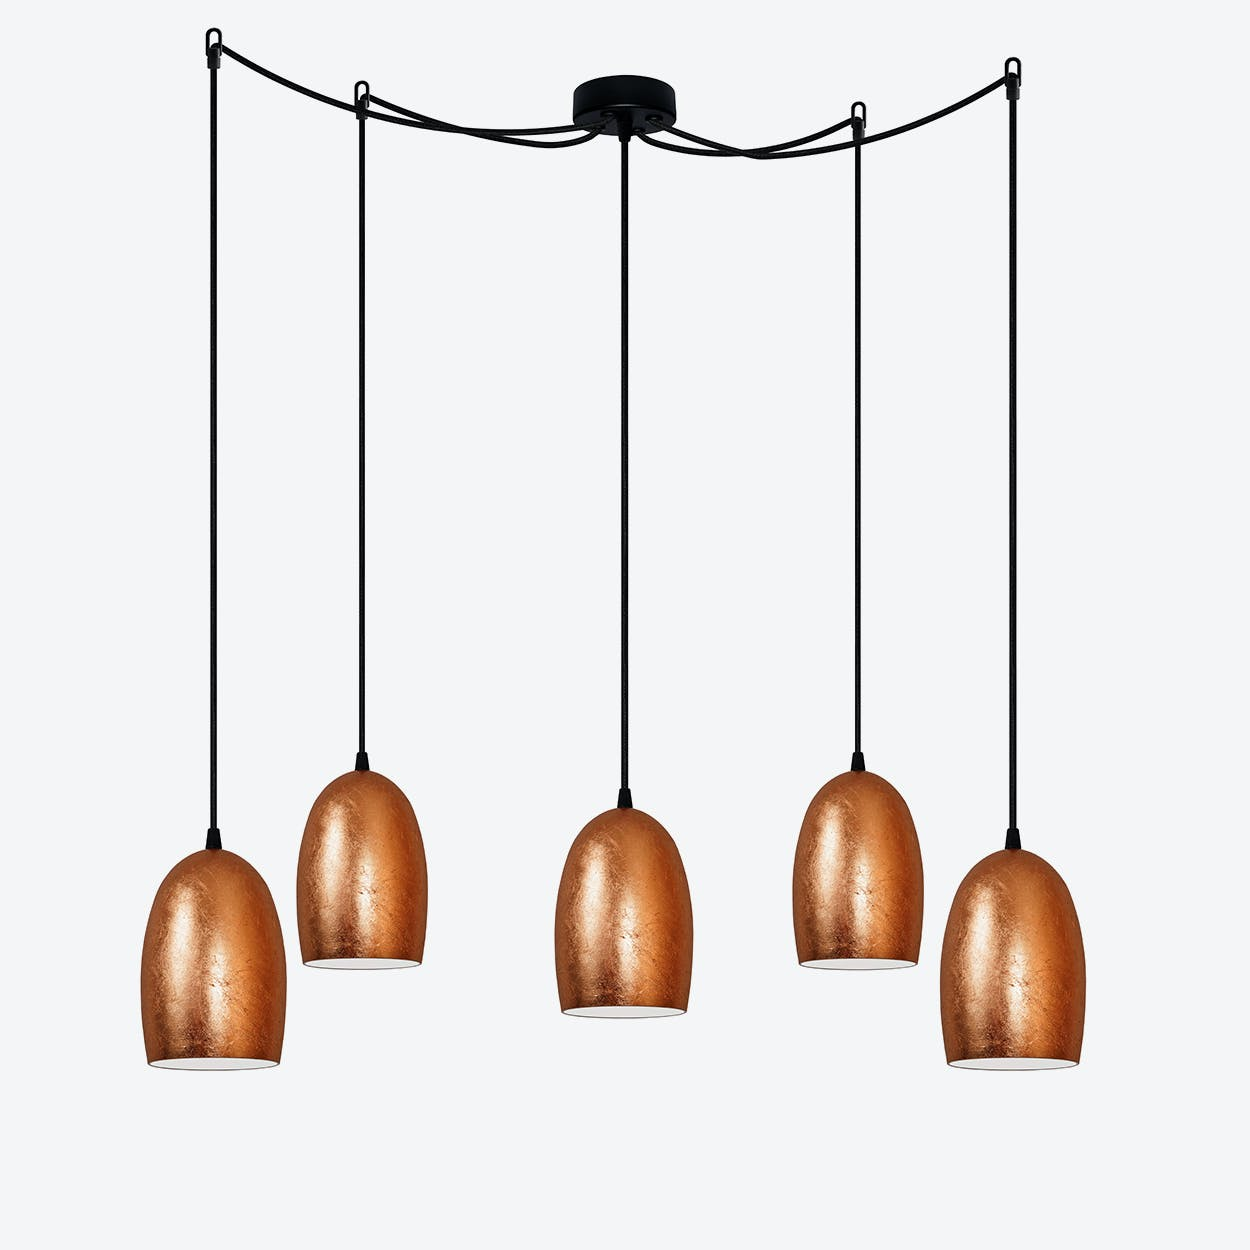 UME 5-Light Pendant Light in Copper Leaf